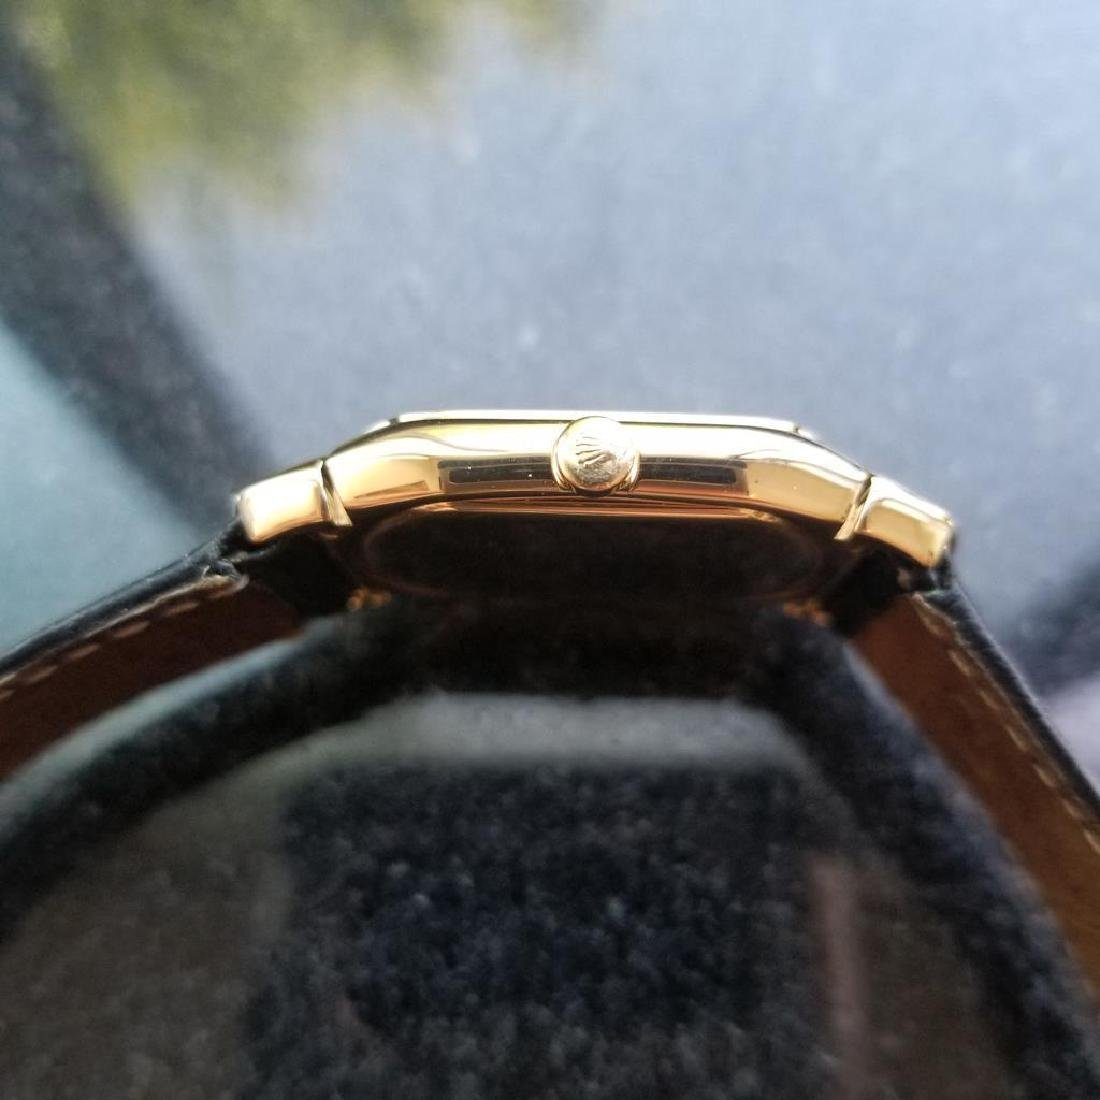 ROLEX Cellini 6633 18K Solid Gold Watch, c.2000 all - 4